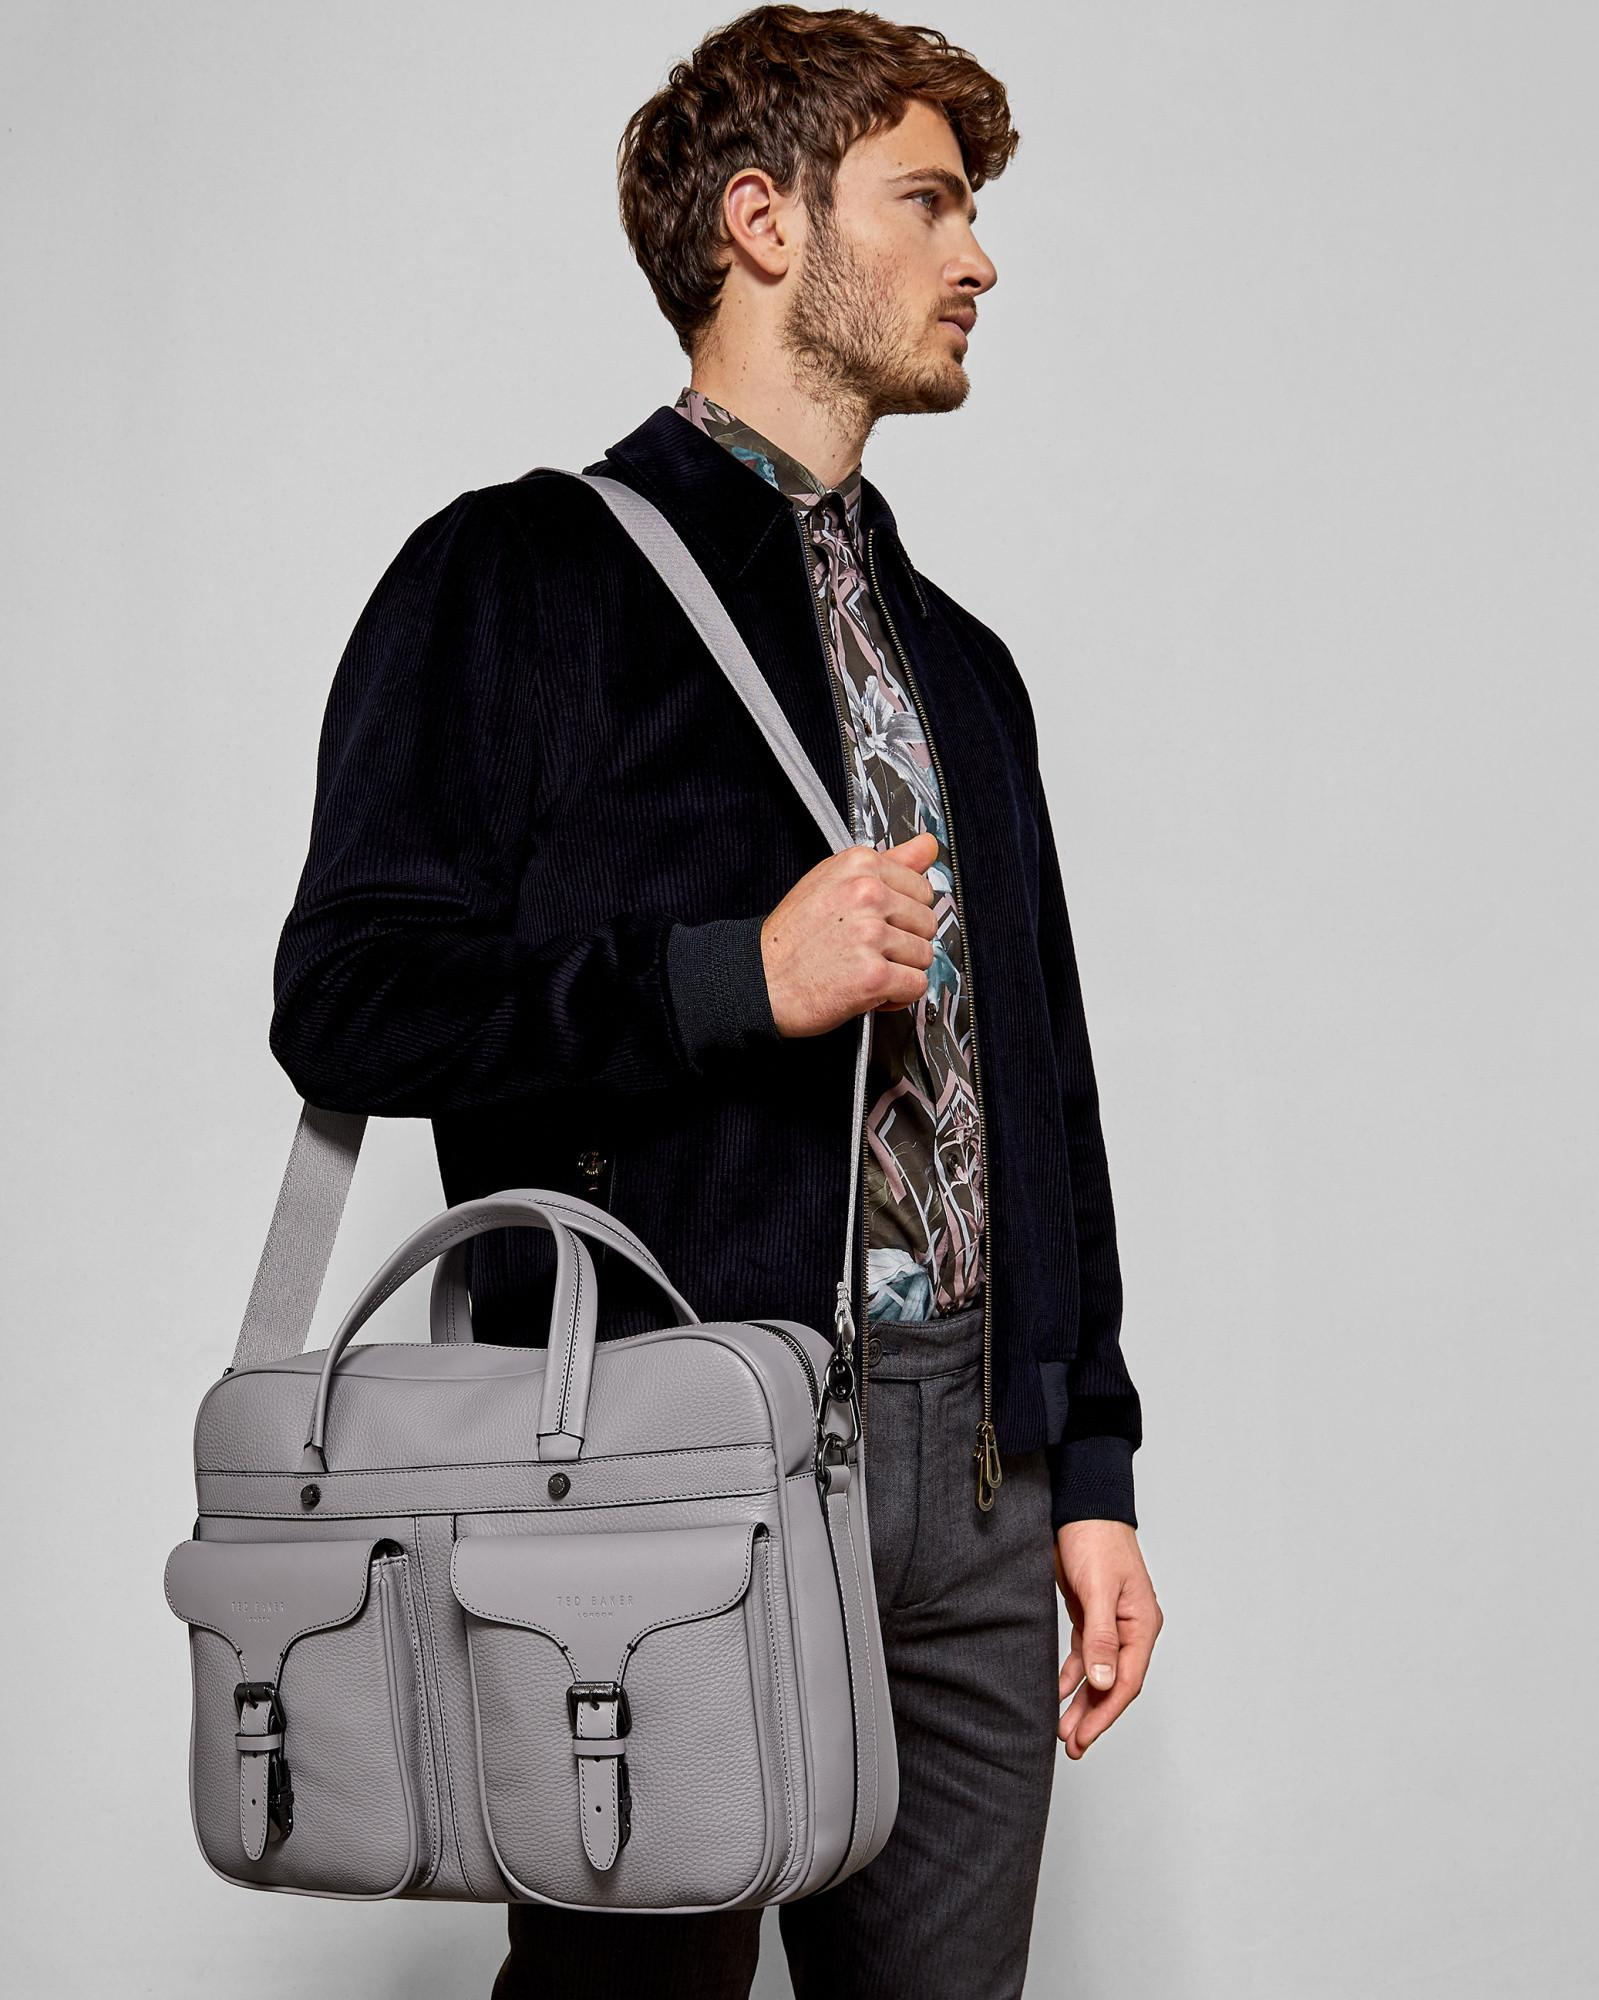 0fd0f91a23e438 Lyst - Ted Baker Fashion Leather Document Bag in Gray for Men